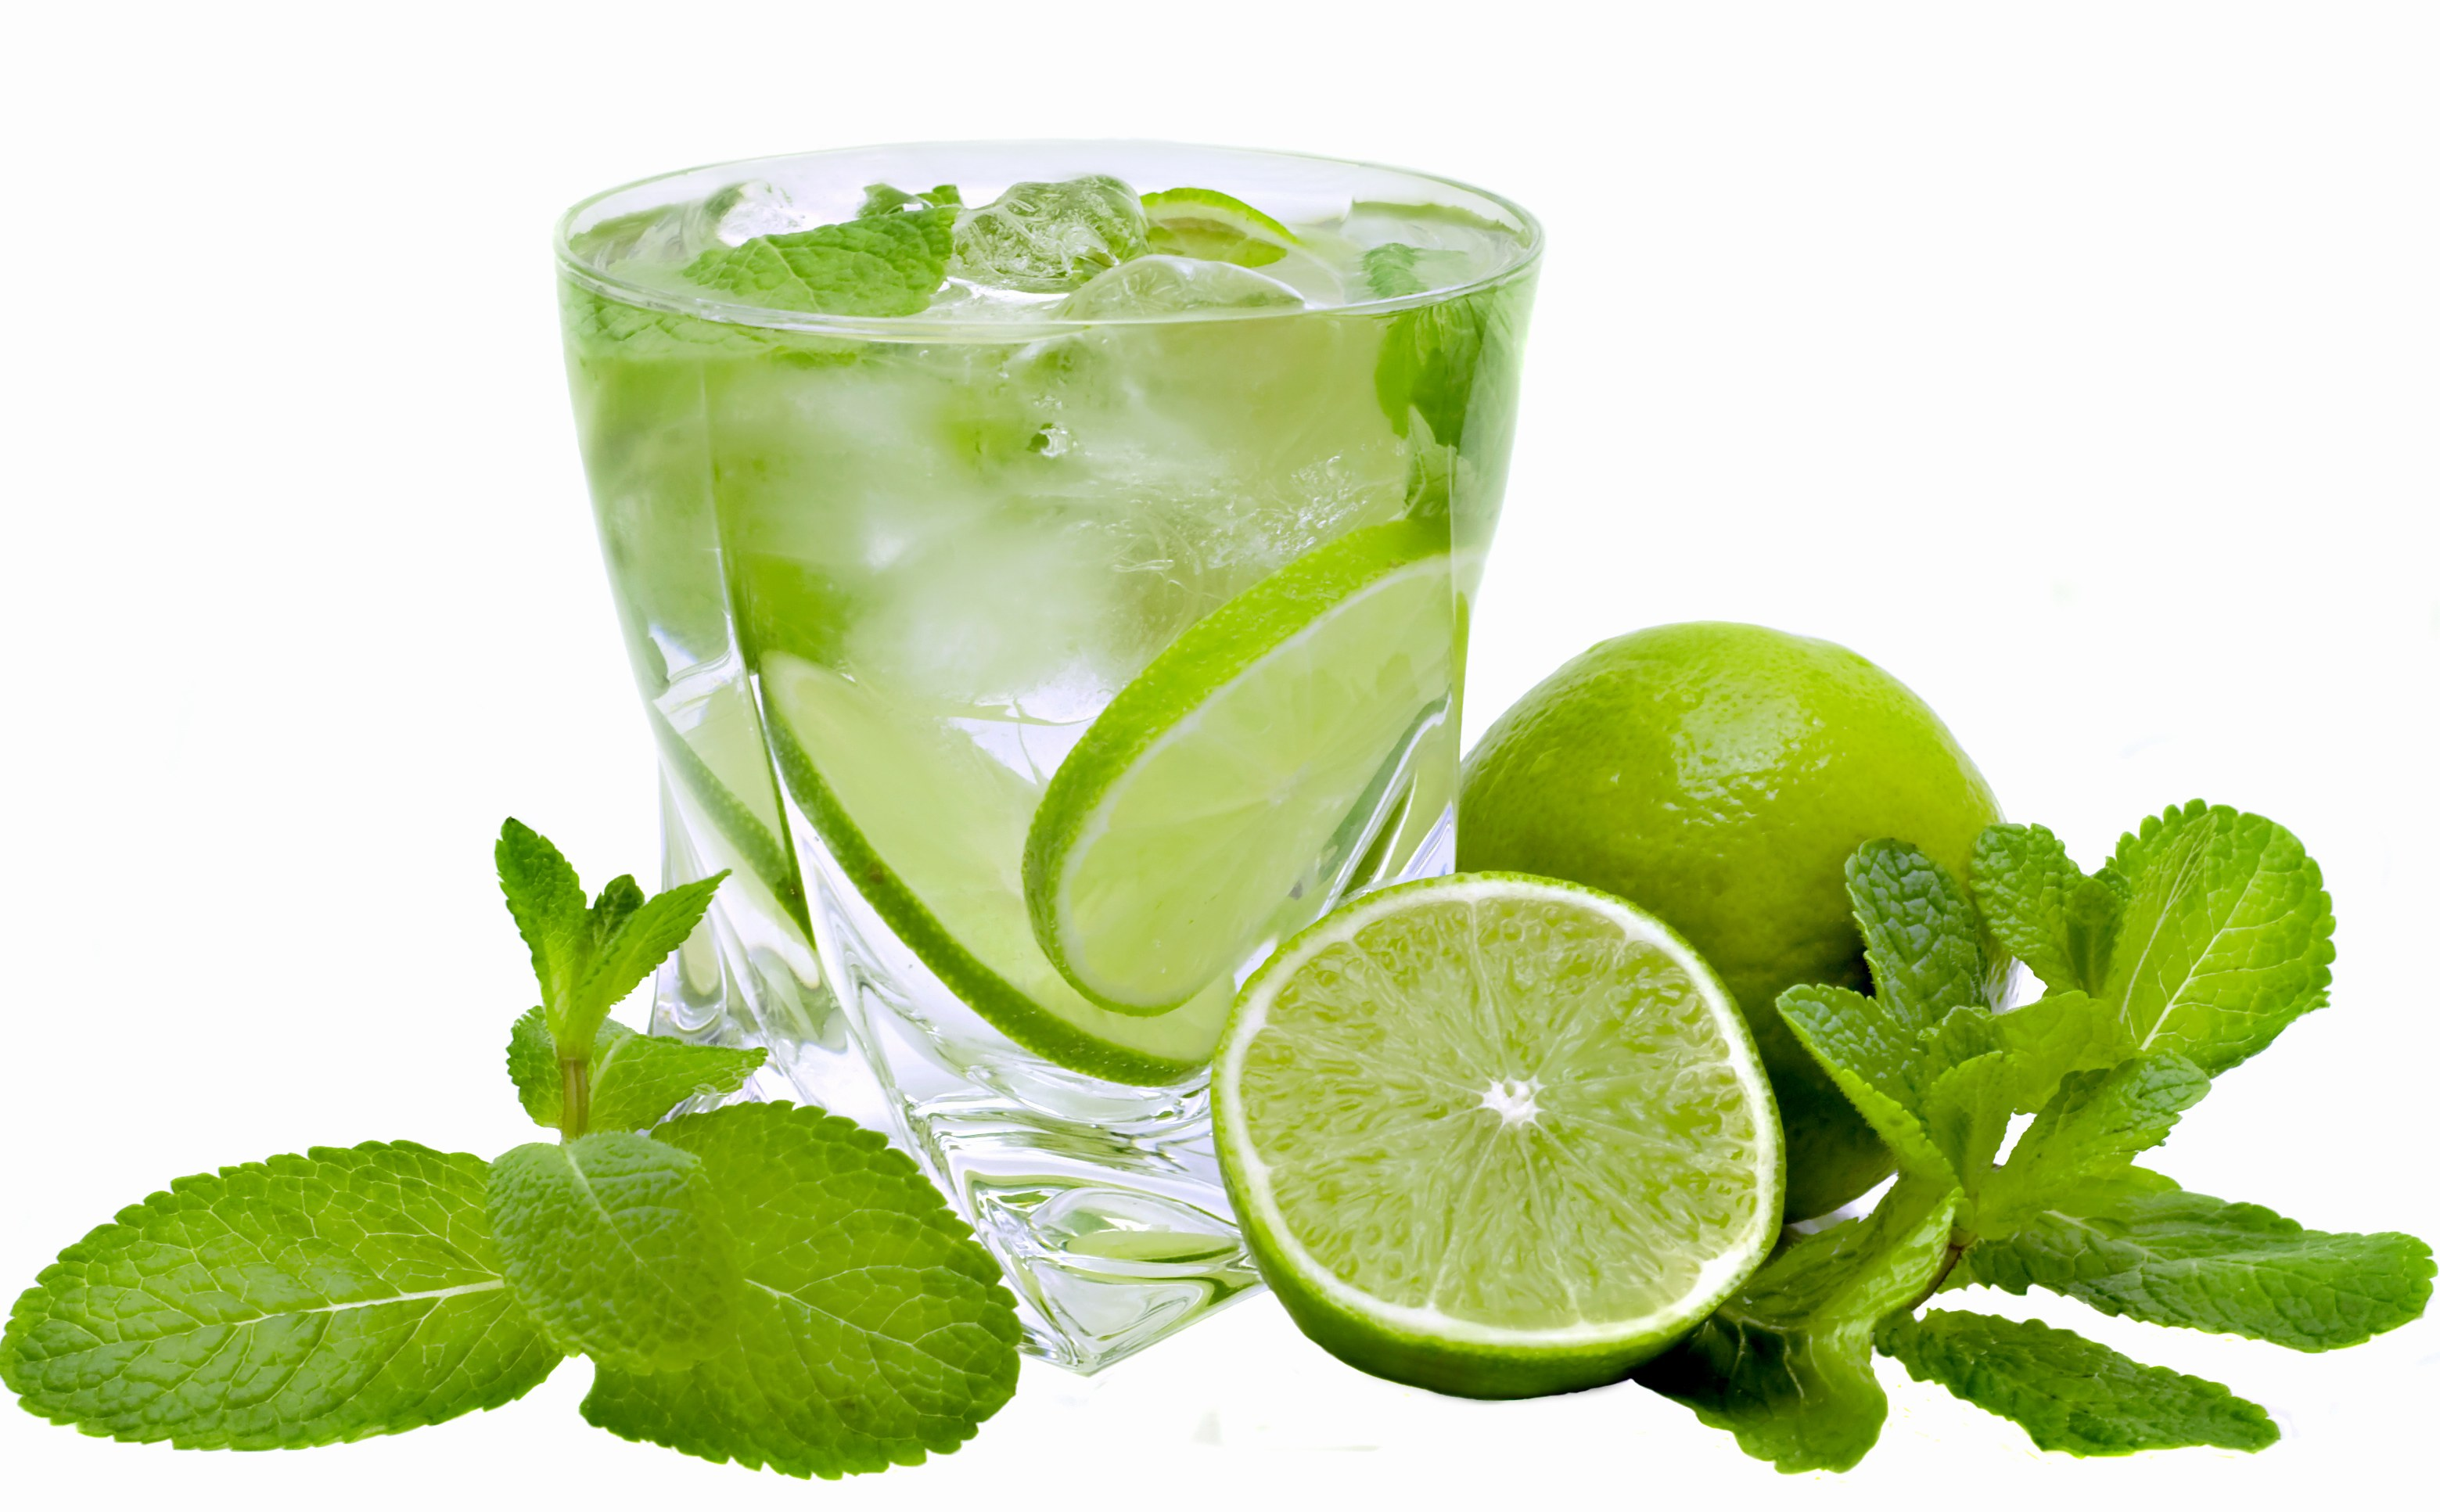 Ice Mojito Cocktail Drink With Lemons And Mint Leaves Picture Photo